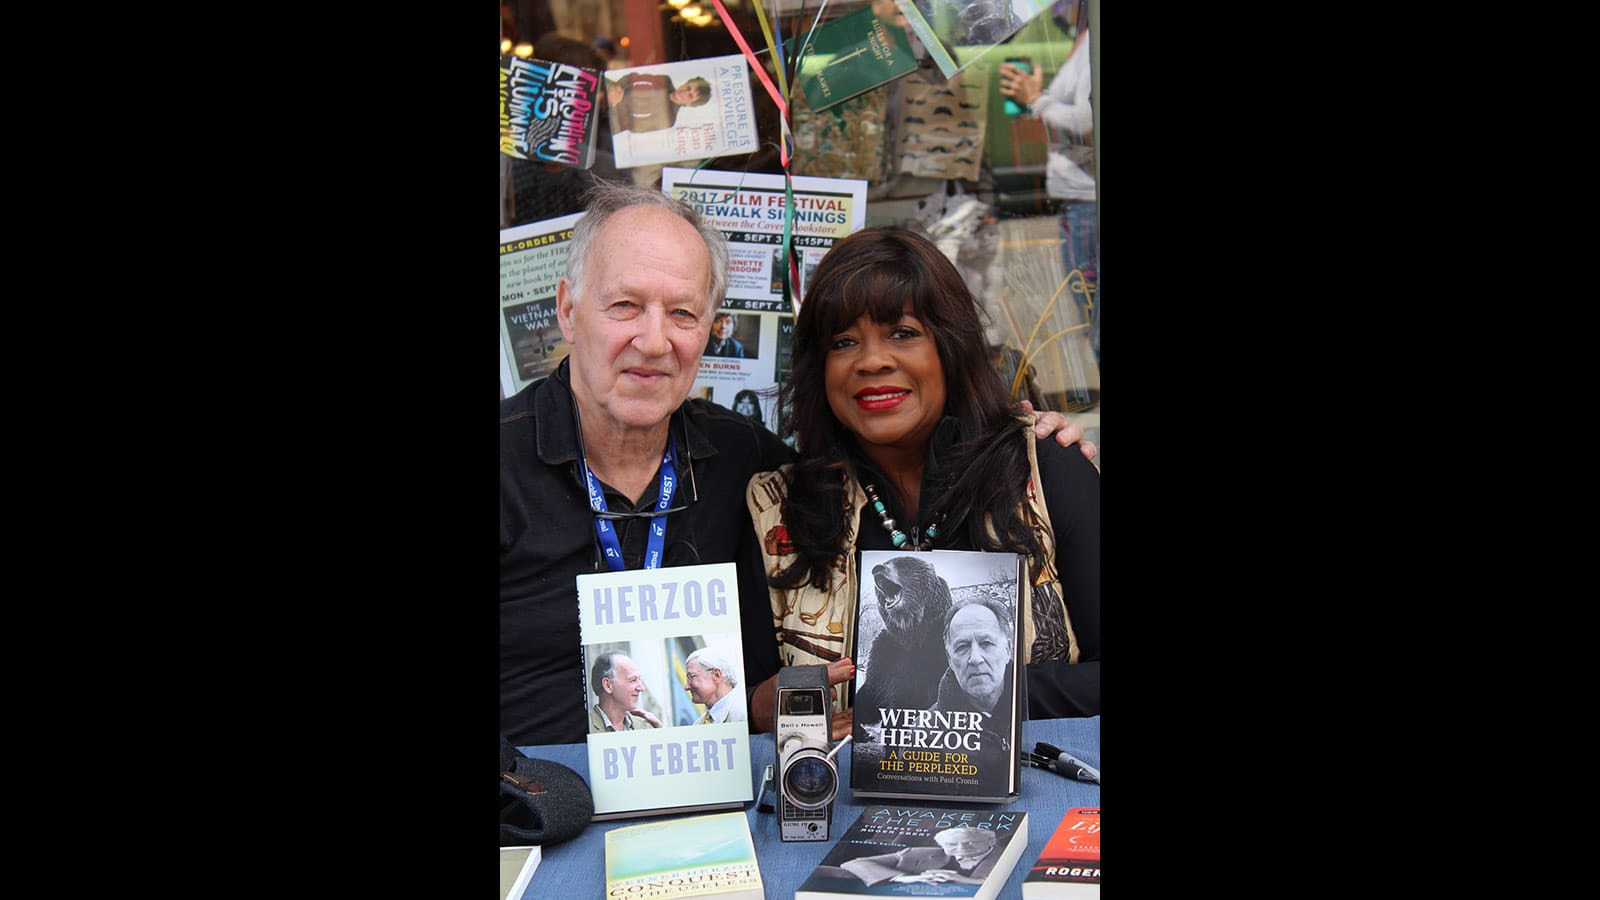 Werner Herzog and Chaz Ebert, wife of the late Roger Ebert, participate in a book signing on Telluride's main street.